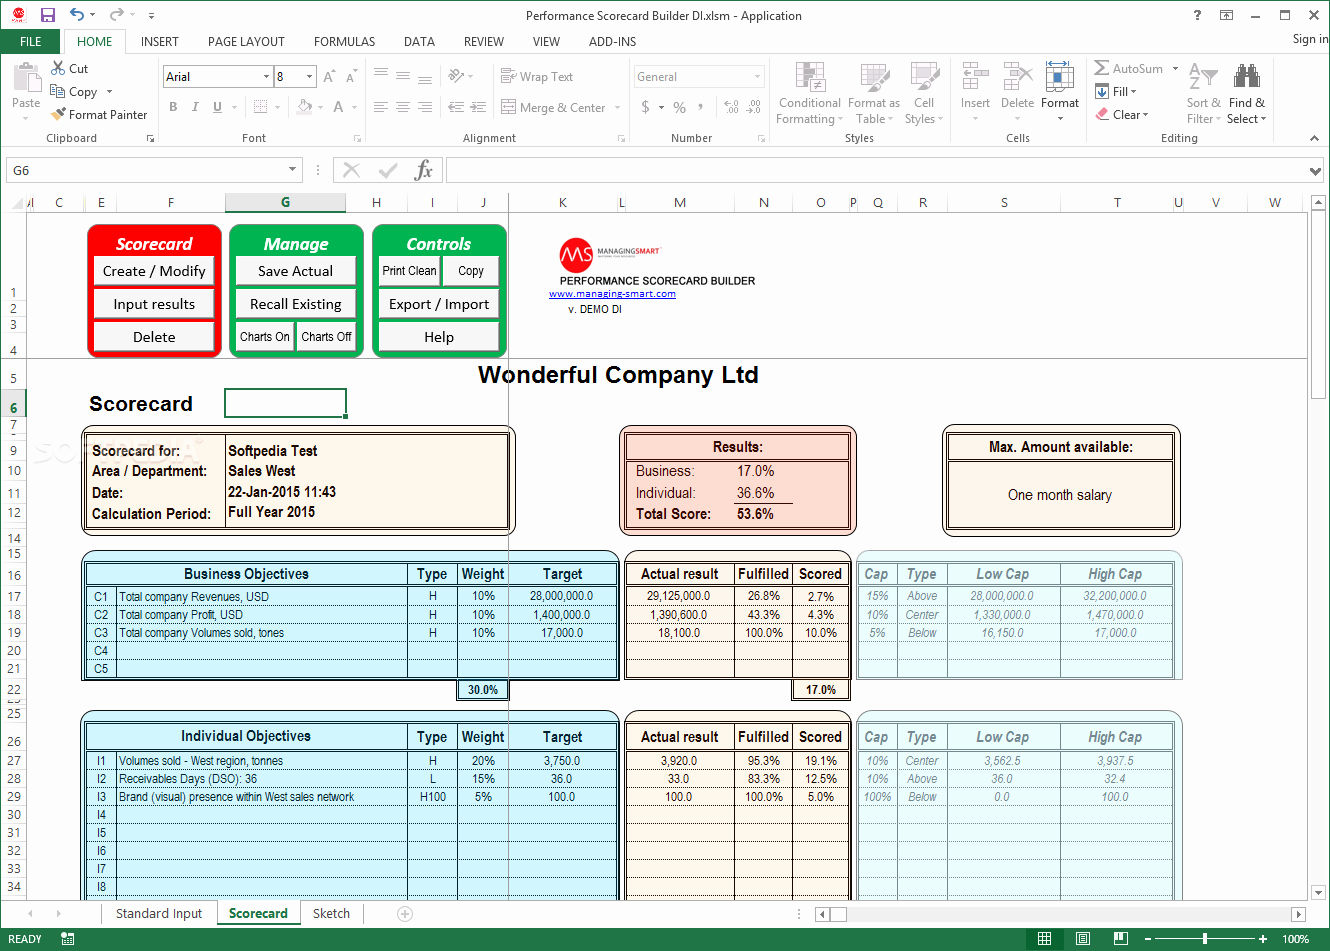 Employee Performance Review Template Excel Luxury Download Performance Scorecard Builder 2 4 1 0